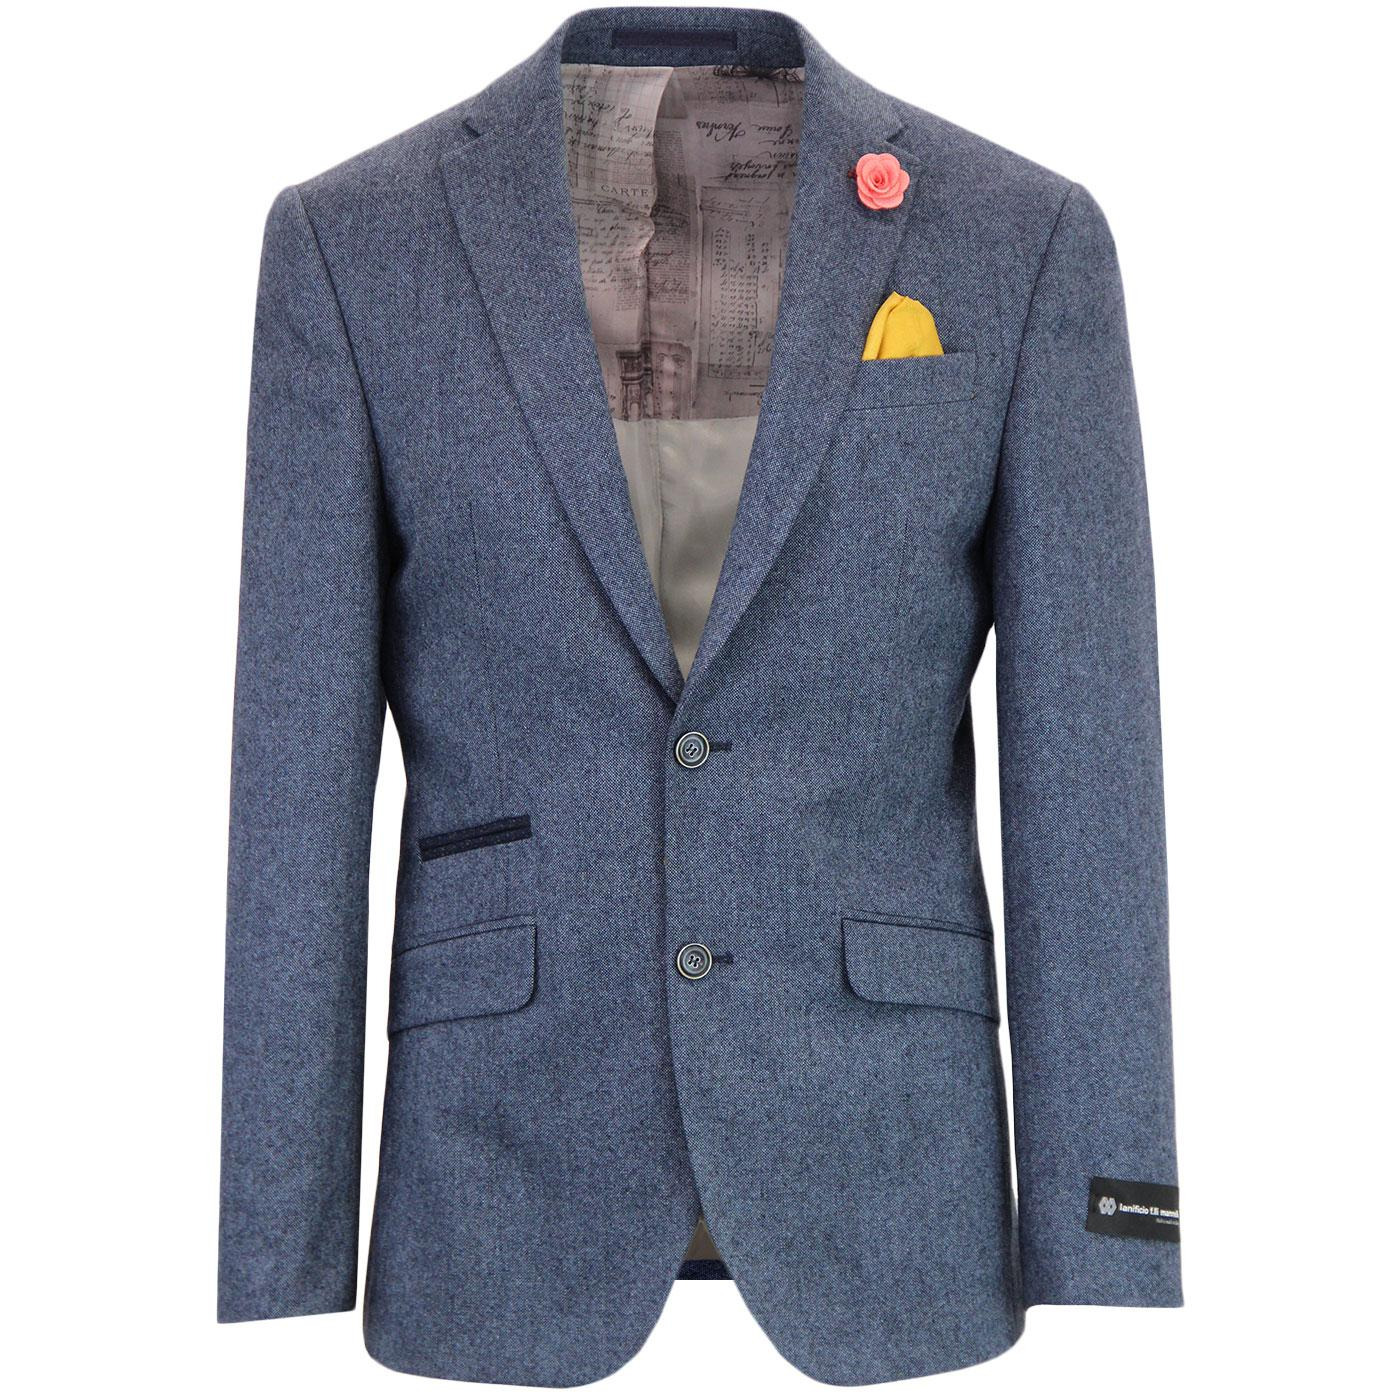 Men's 1960s Mod 2 Button Blue Donegal Suit Jacket